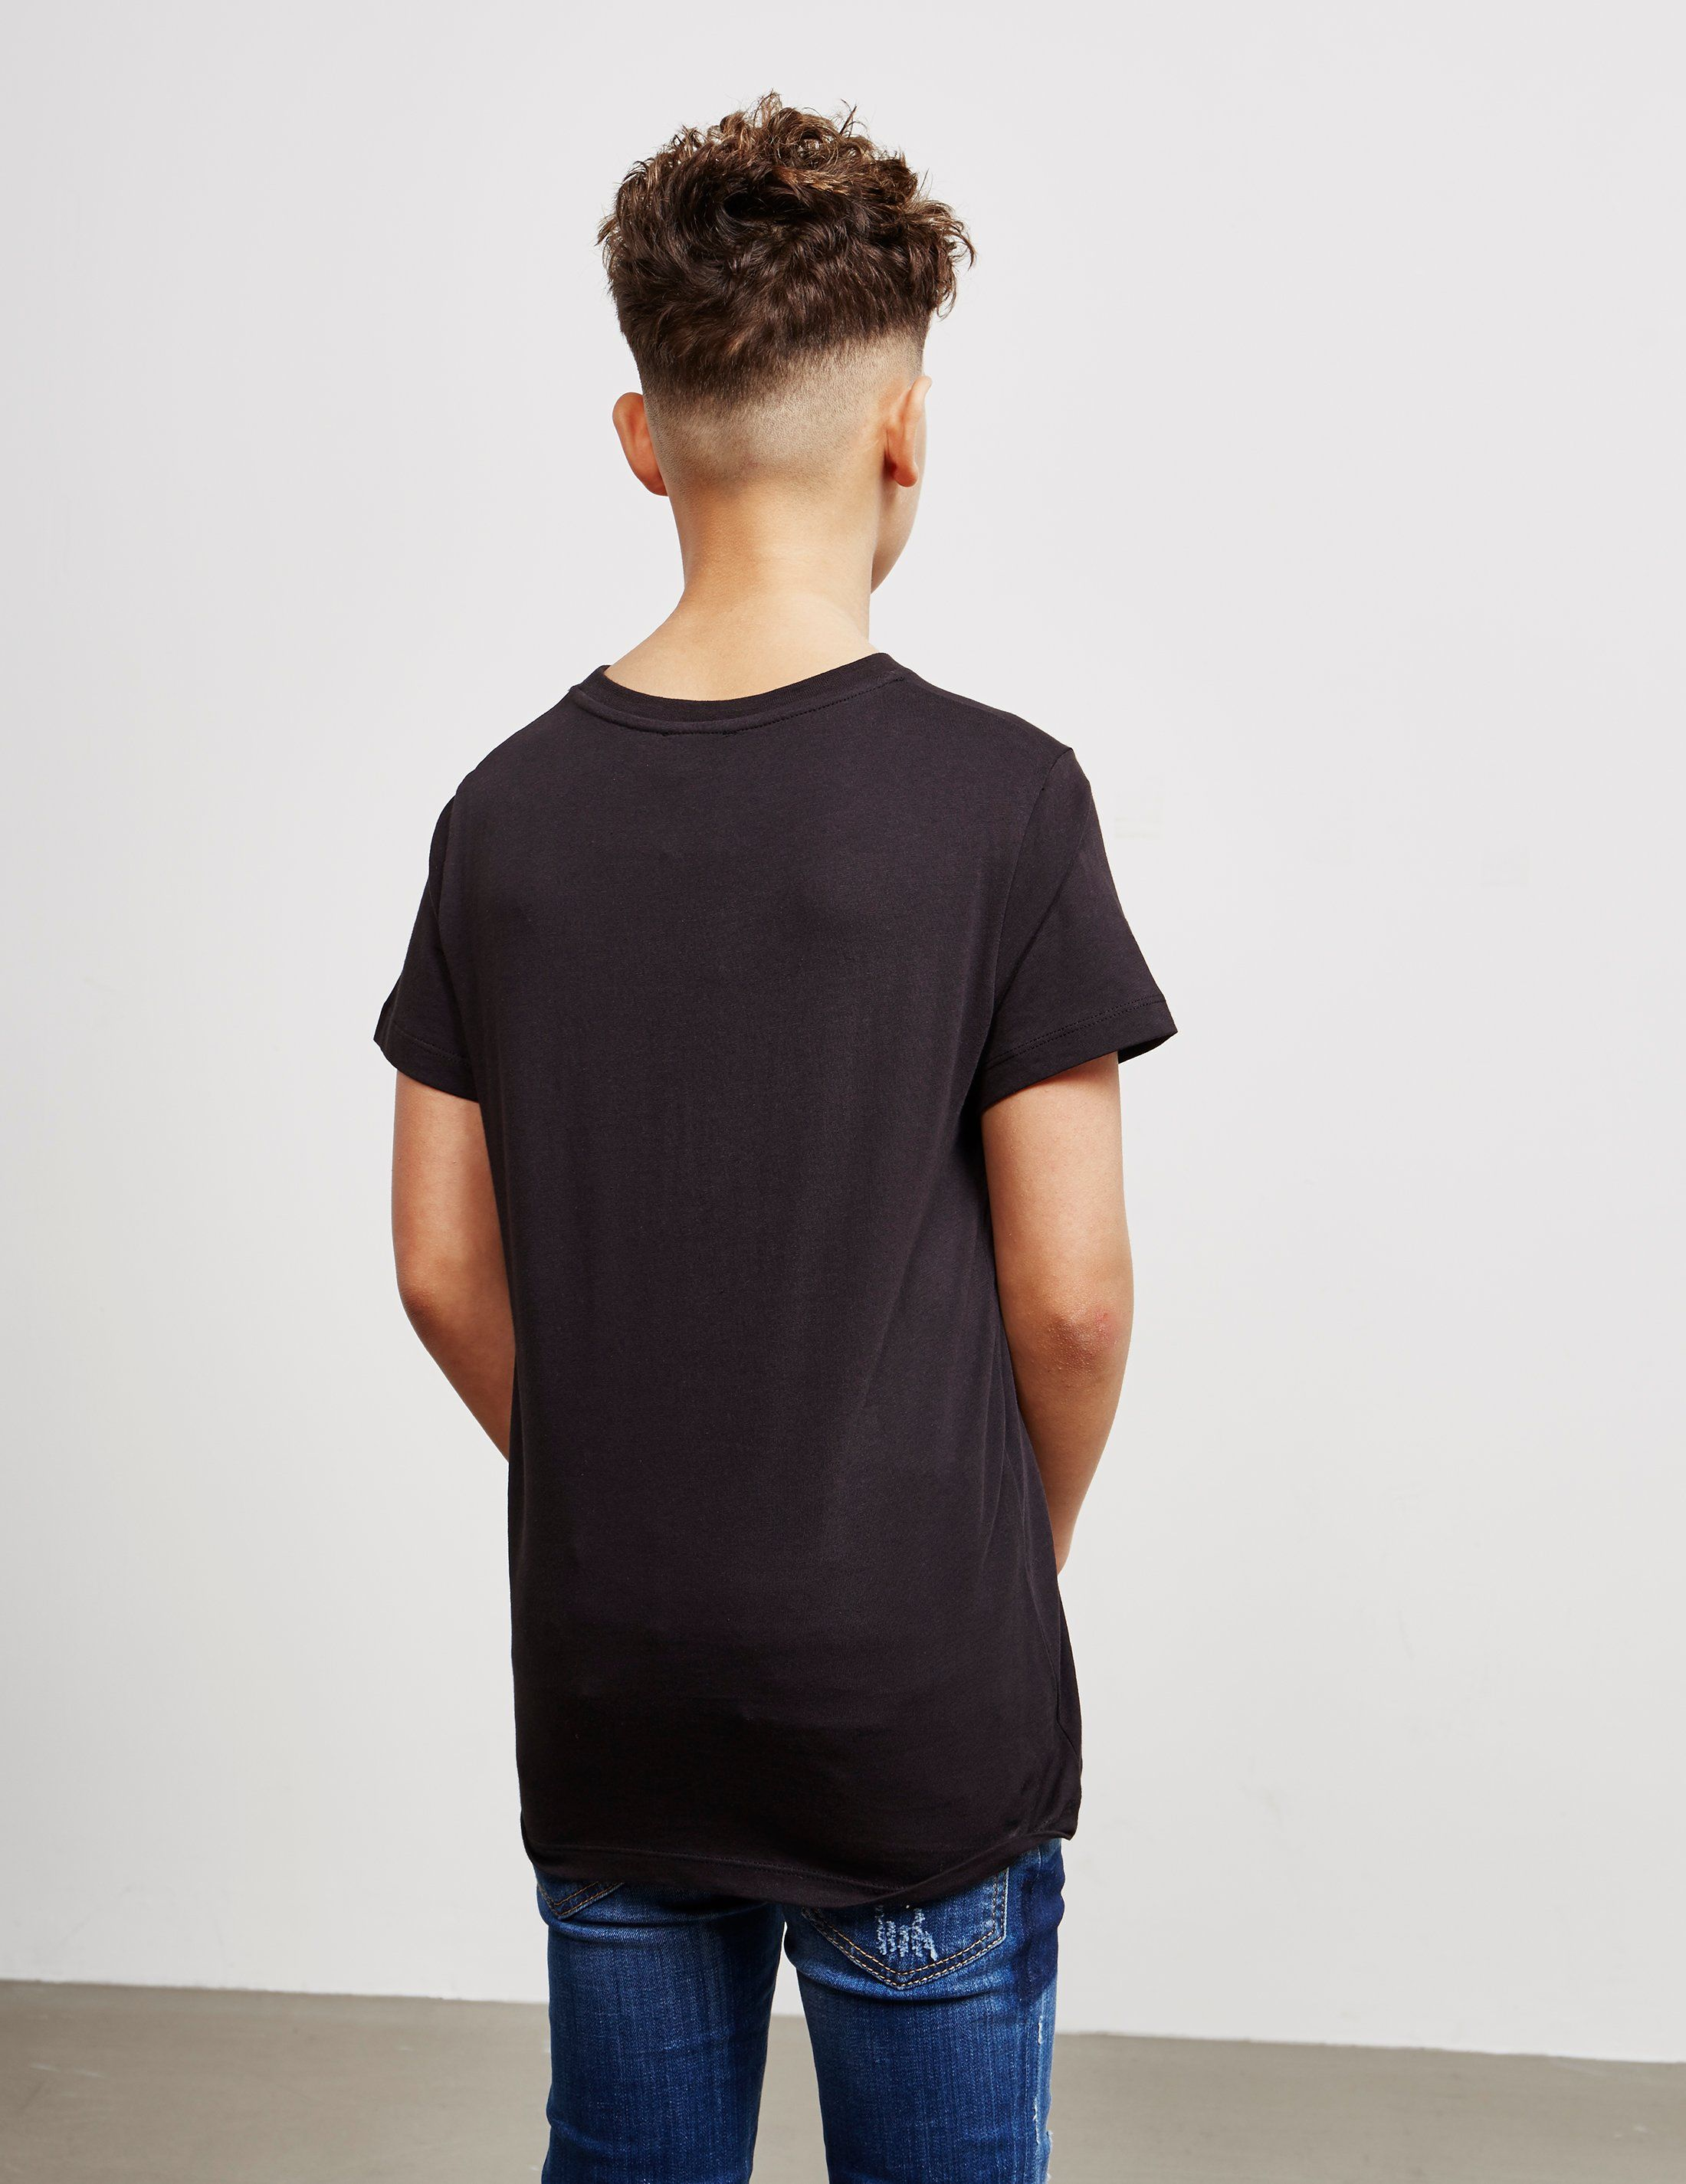 Lanvin L Short Sleeve T-Shirt